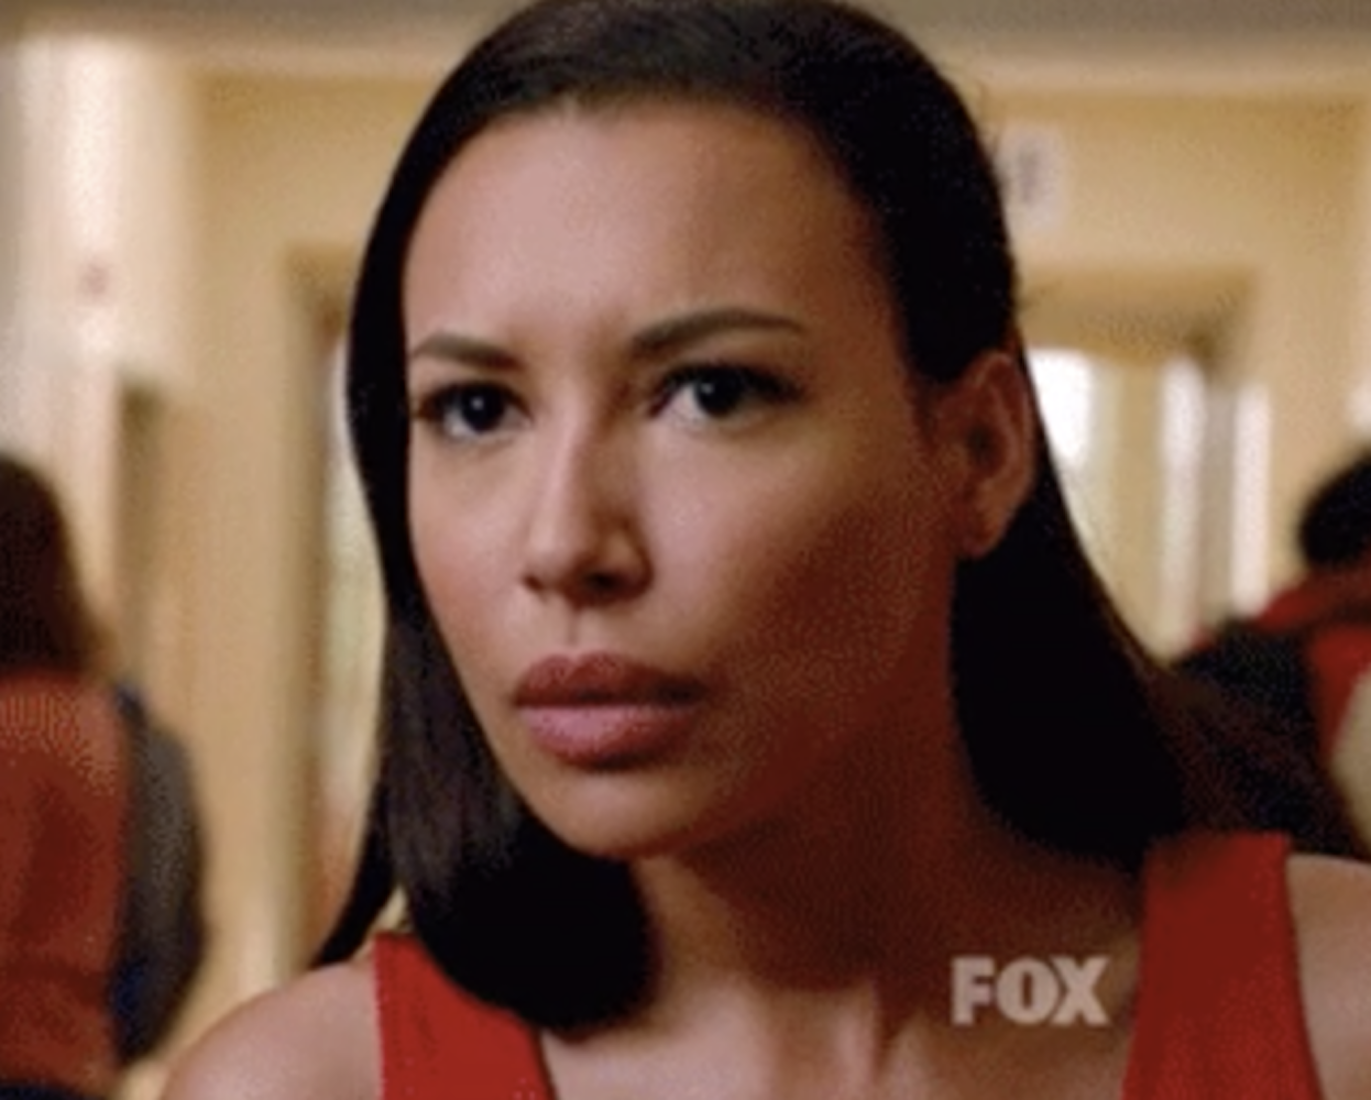 """Santana from """"Glee"""" making a confused/disgusted expression"""